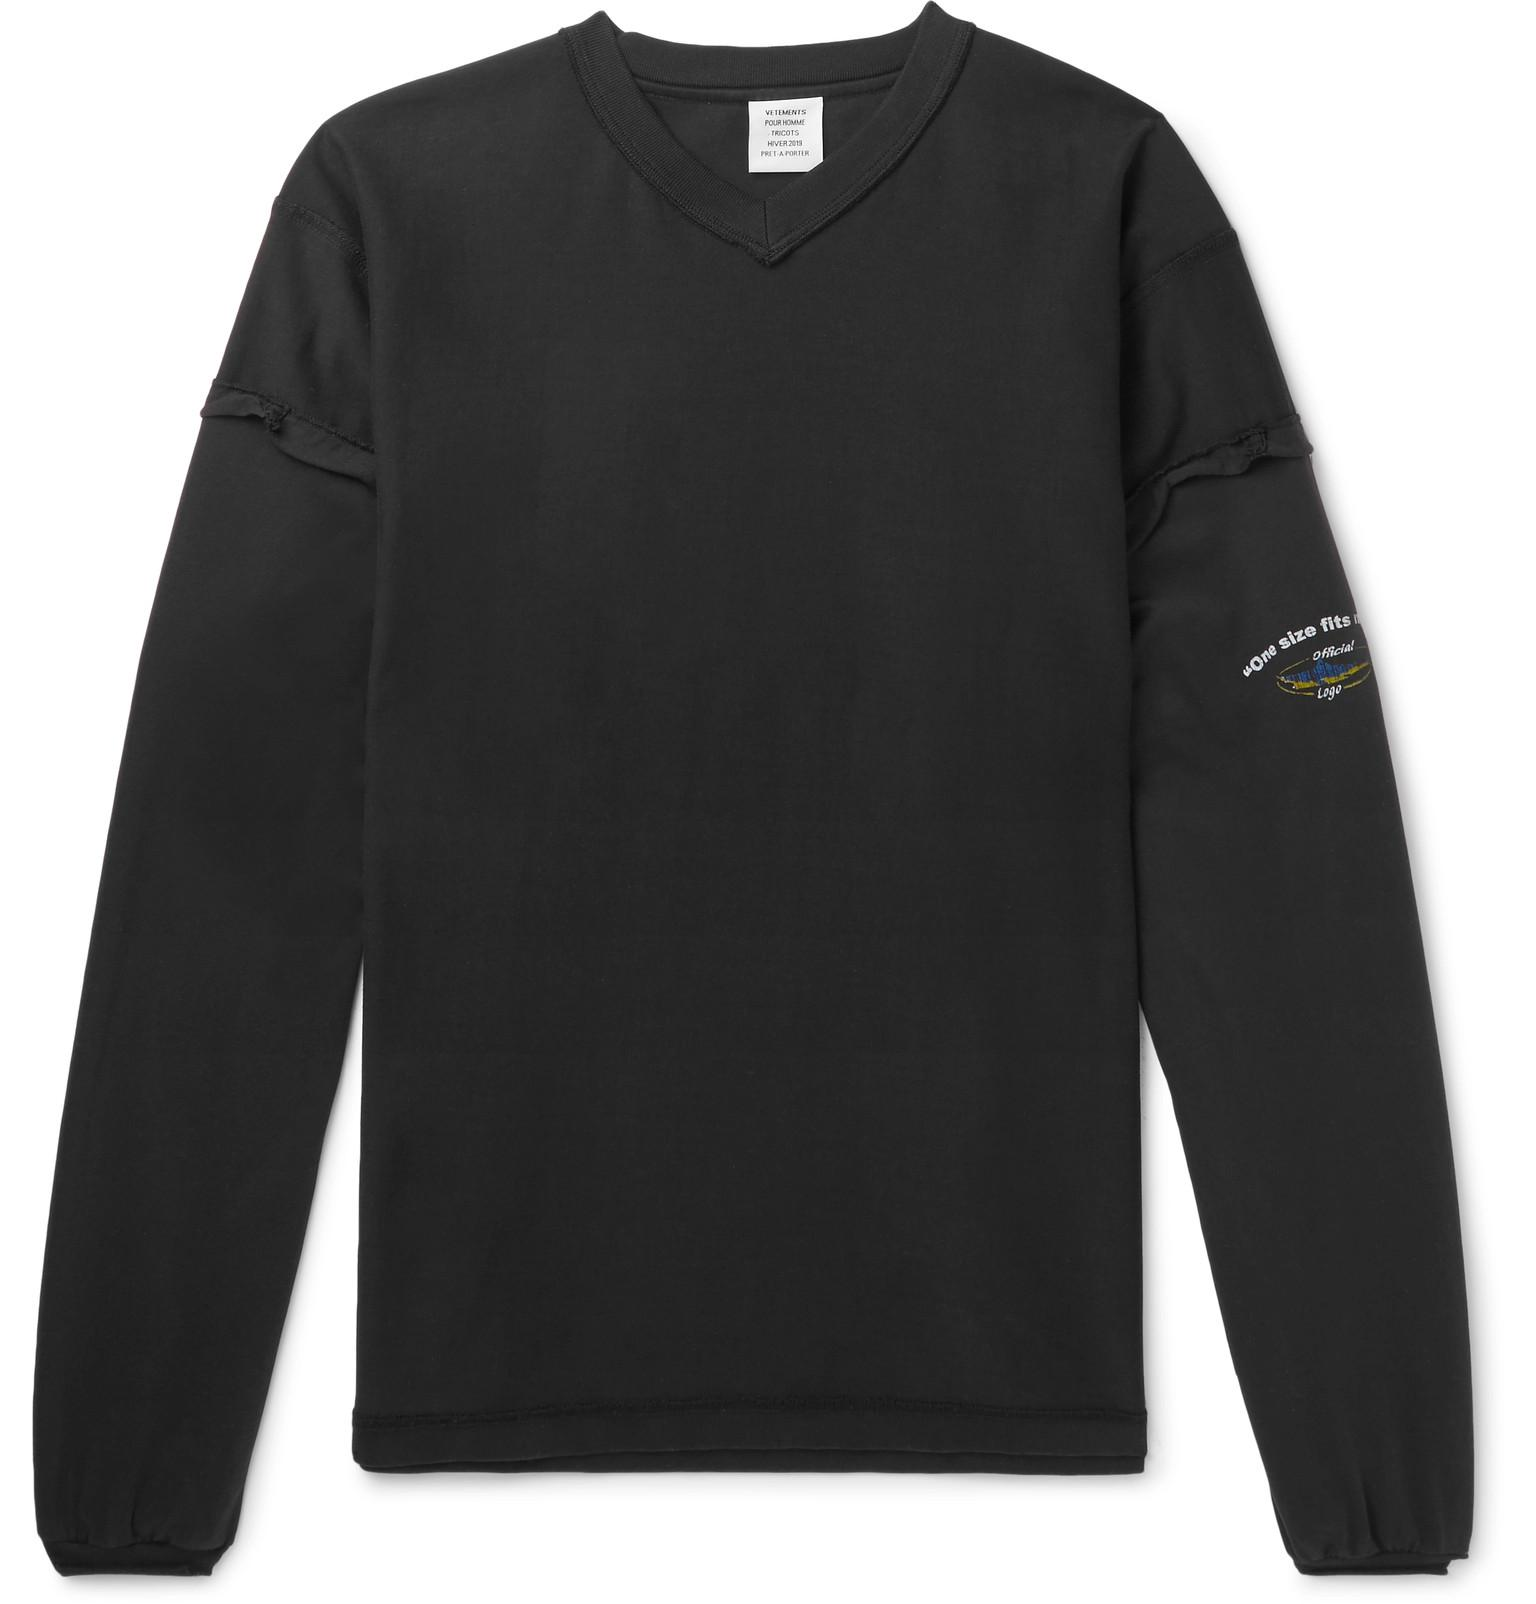 Lyst - Vetements Oversized Appliquéd Printed Cotton-jersey T-shirt ... c7deb787136